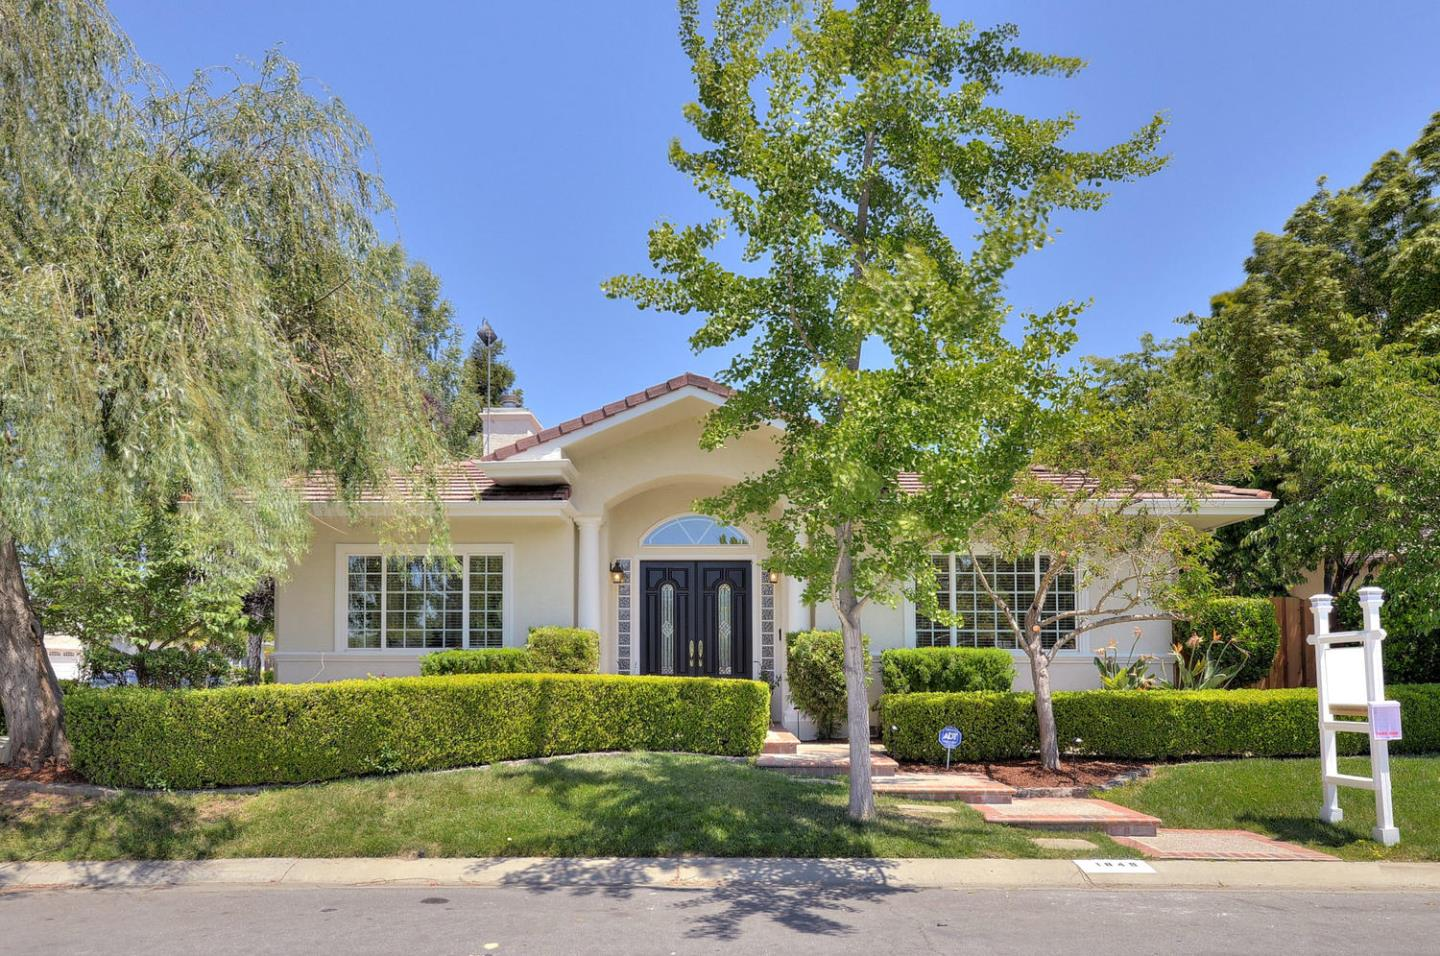 Detail Gallery Image 1 of 20 For 1849 Grant Park Ln, Los Altos, CA, 94024 - 4 Beds | 3/1 Baths